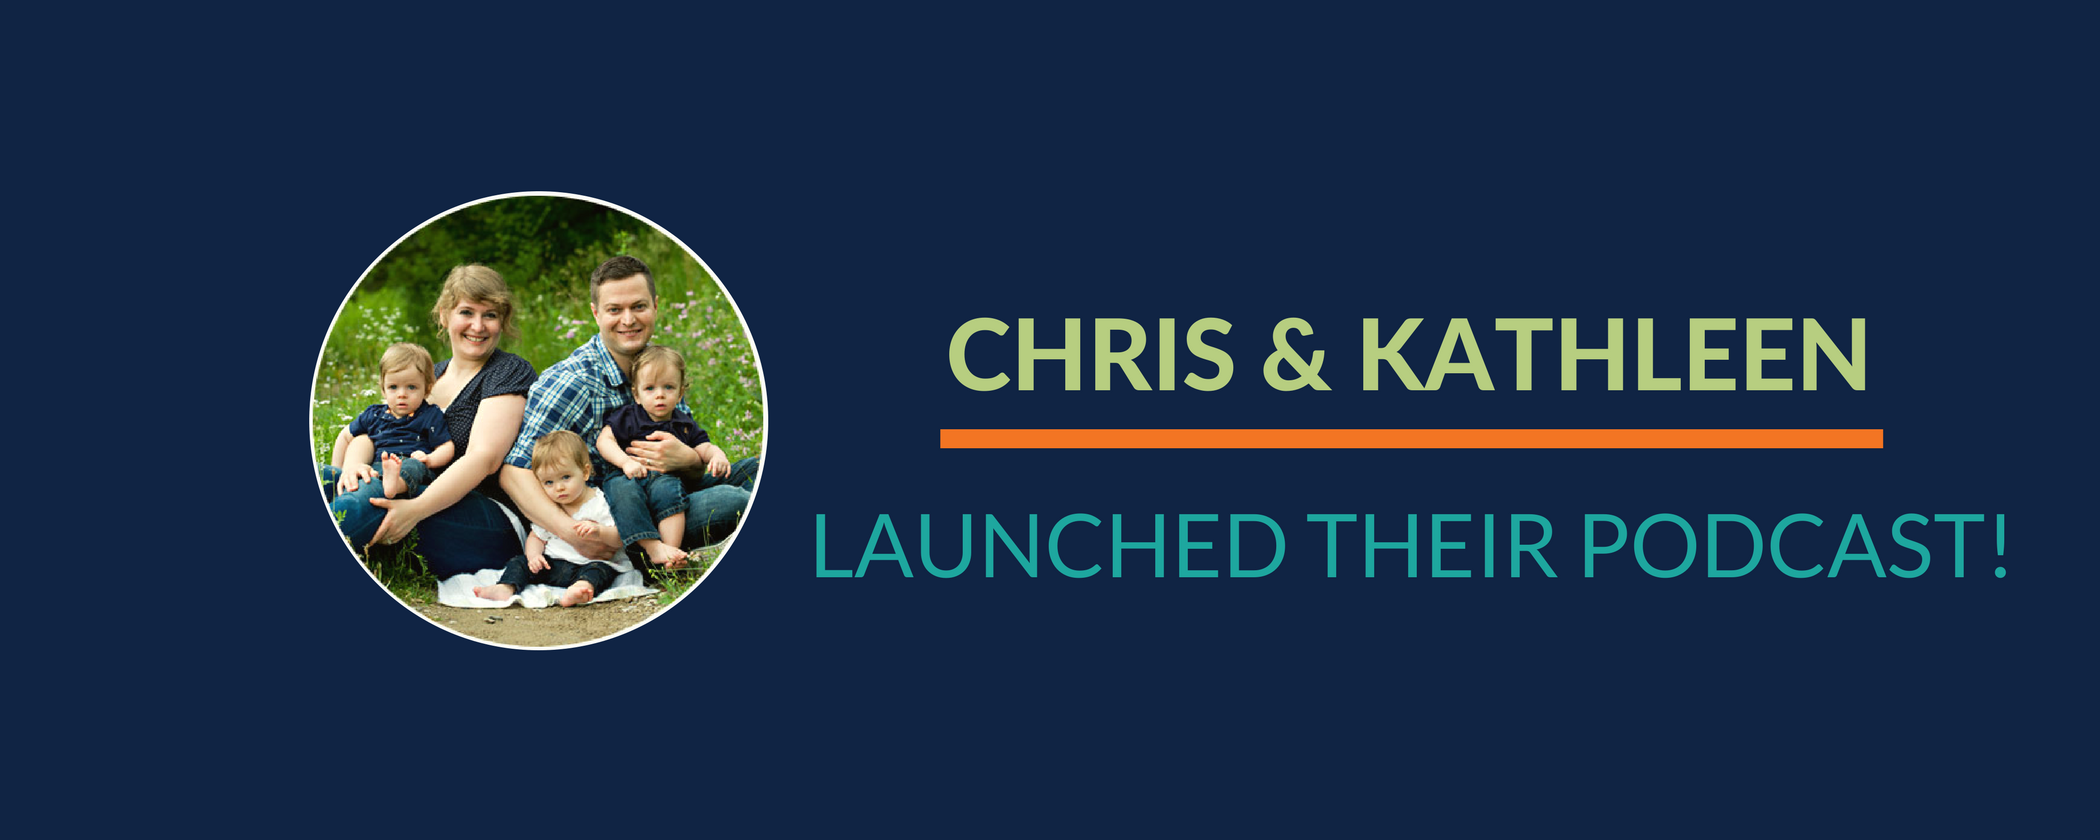 Success Story: Chris & Kathleen LAUNCHED their podcast!